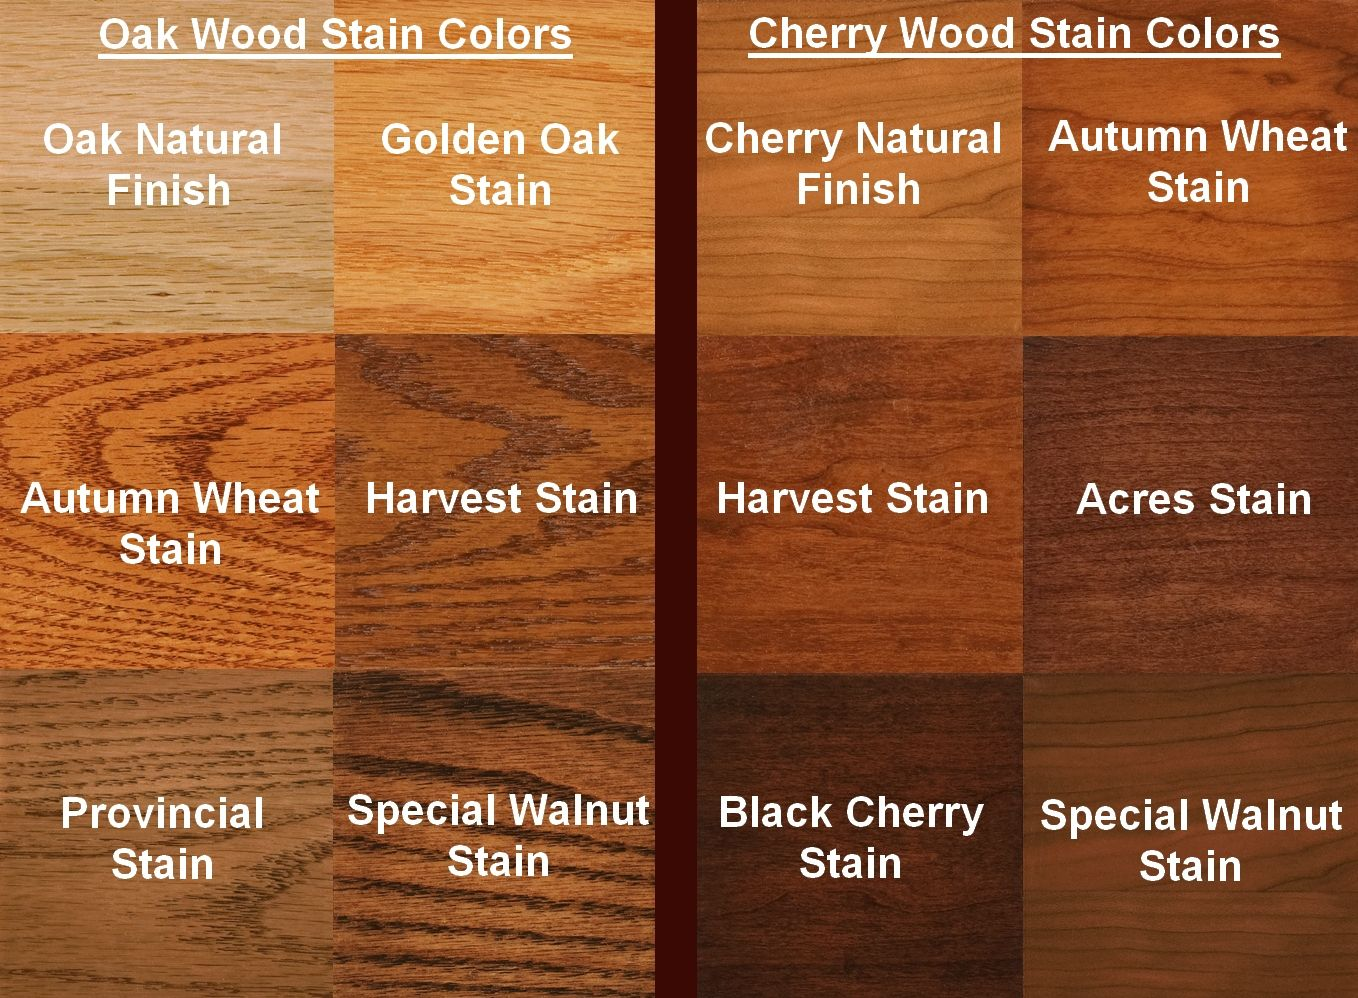 Kitchen Cherry Oak Stain Colors Final High Def 1358x998px Kitchen Cabinet Stain Colors